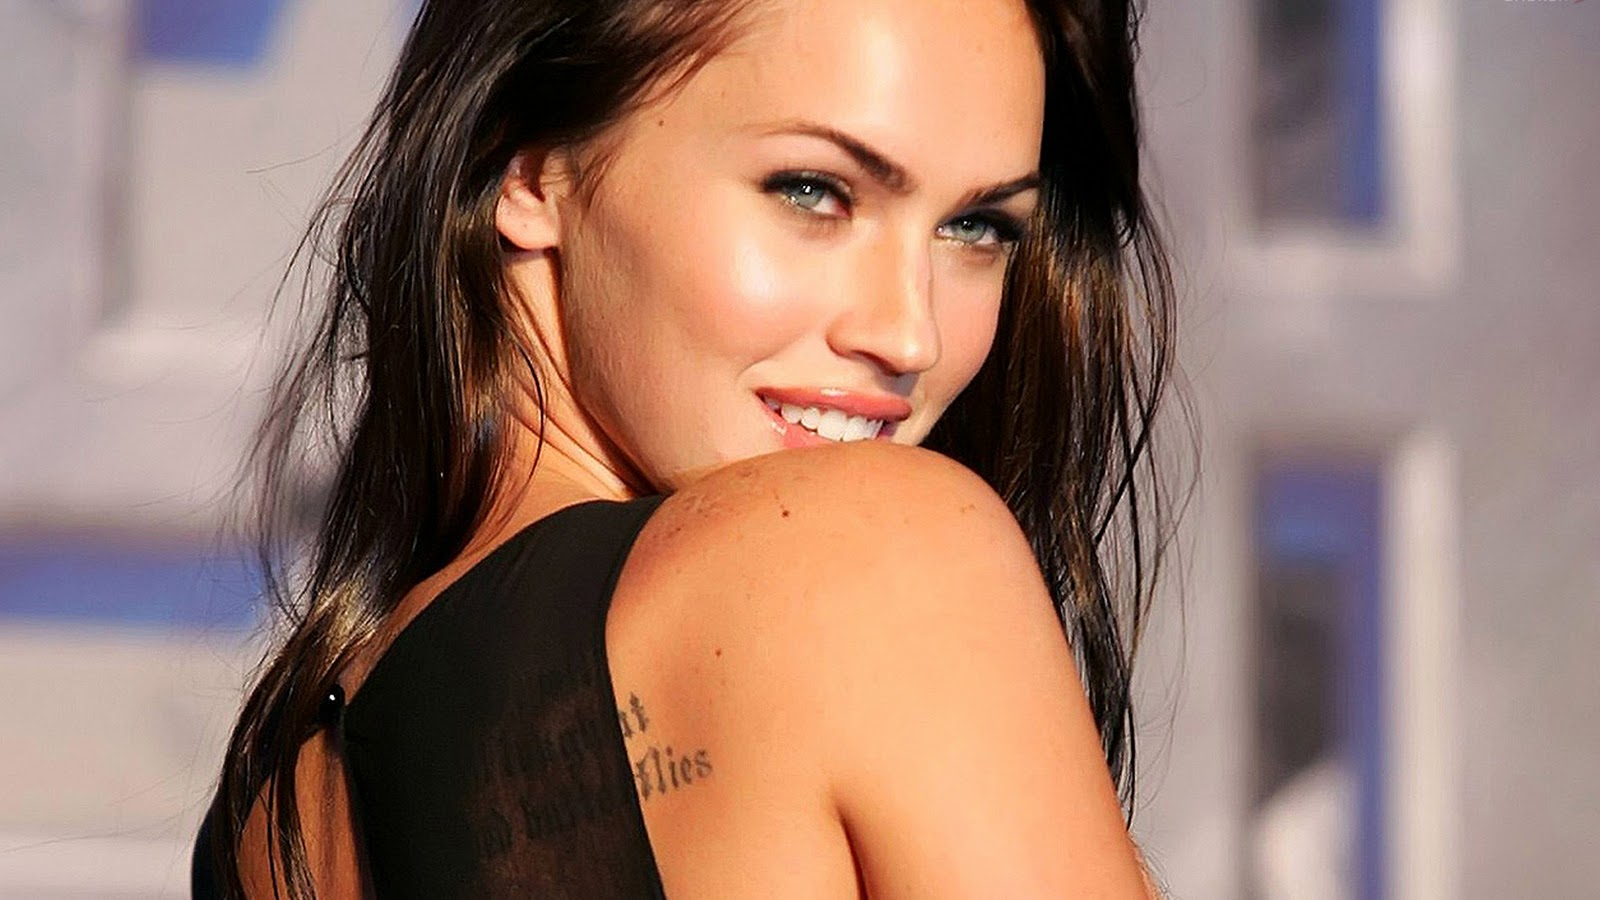 Hollywood All Stars Megan Fox Hd Wallpapers 2012 1600x900